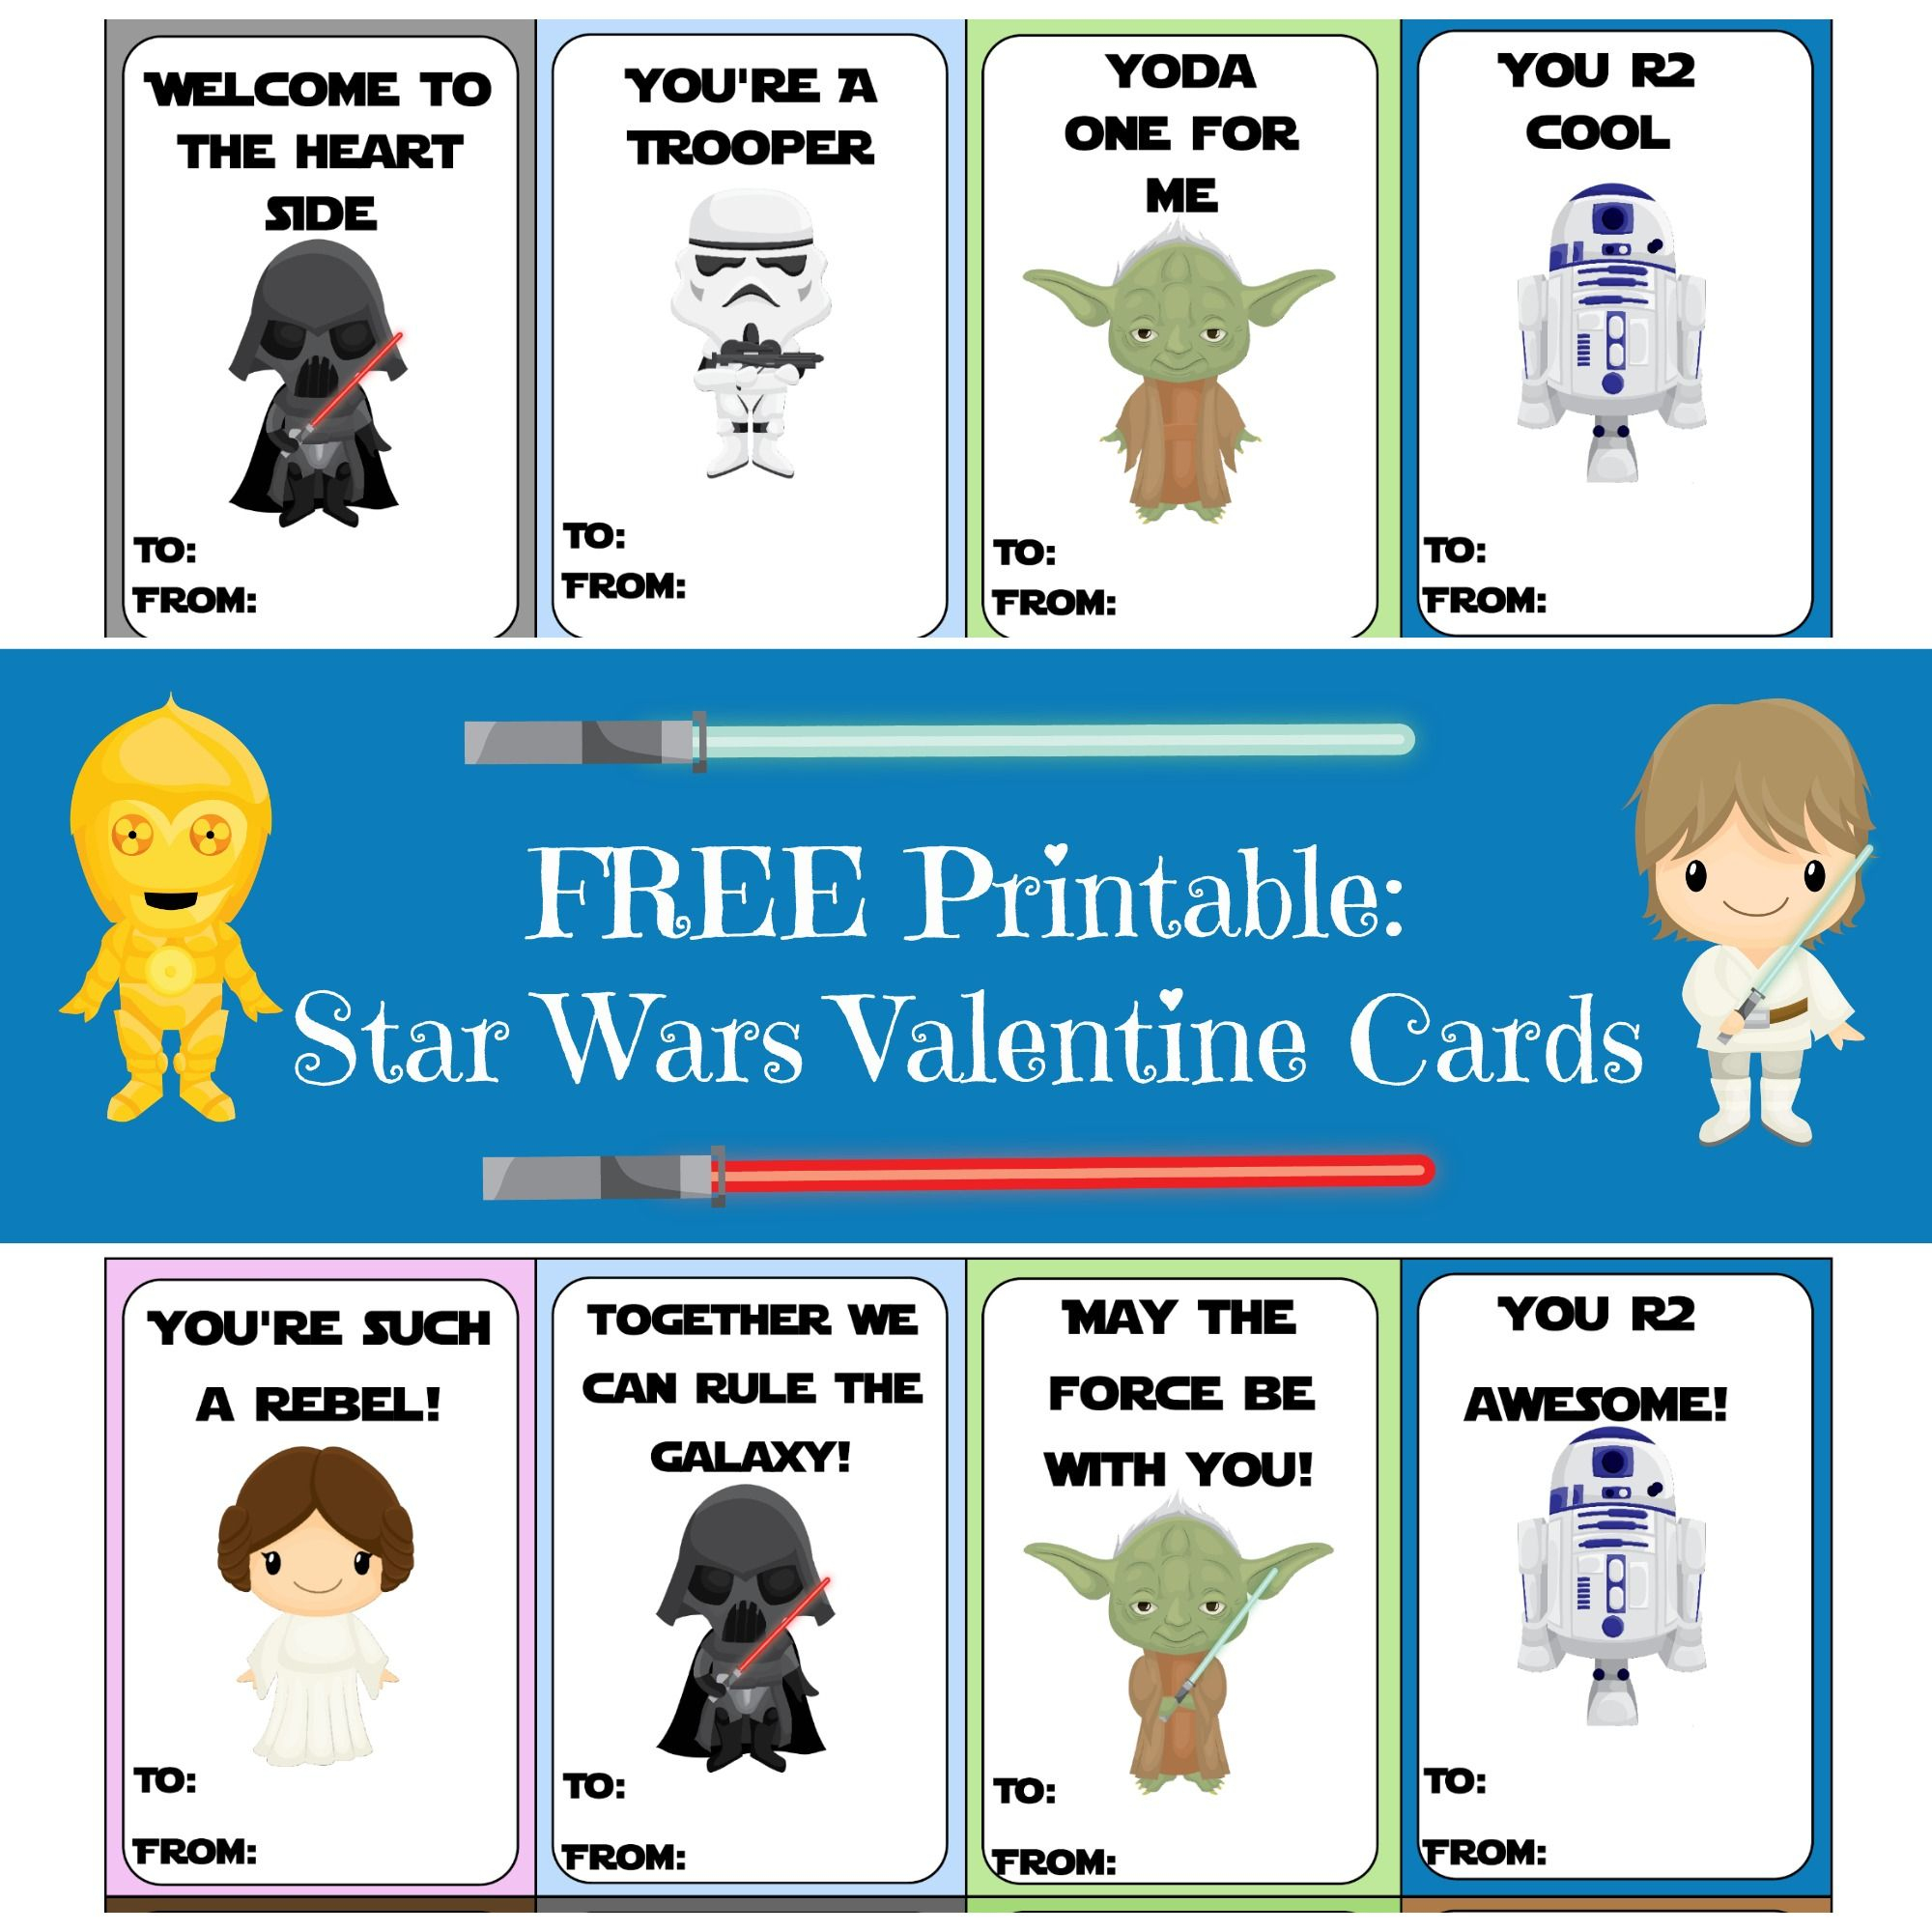 Valentine Card Round-Up | Printables | Valentines, Starwars - Free Printable Lego Star Wars Valentines